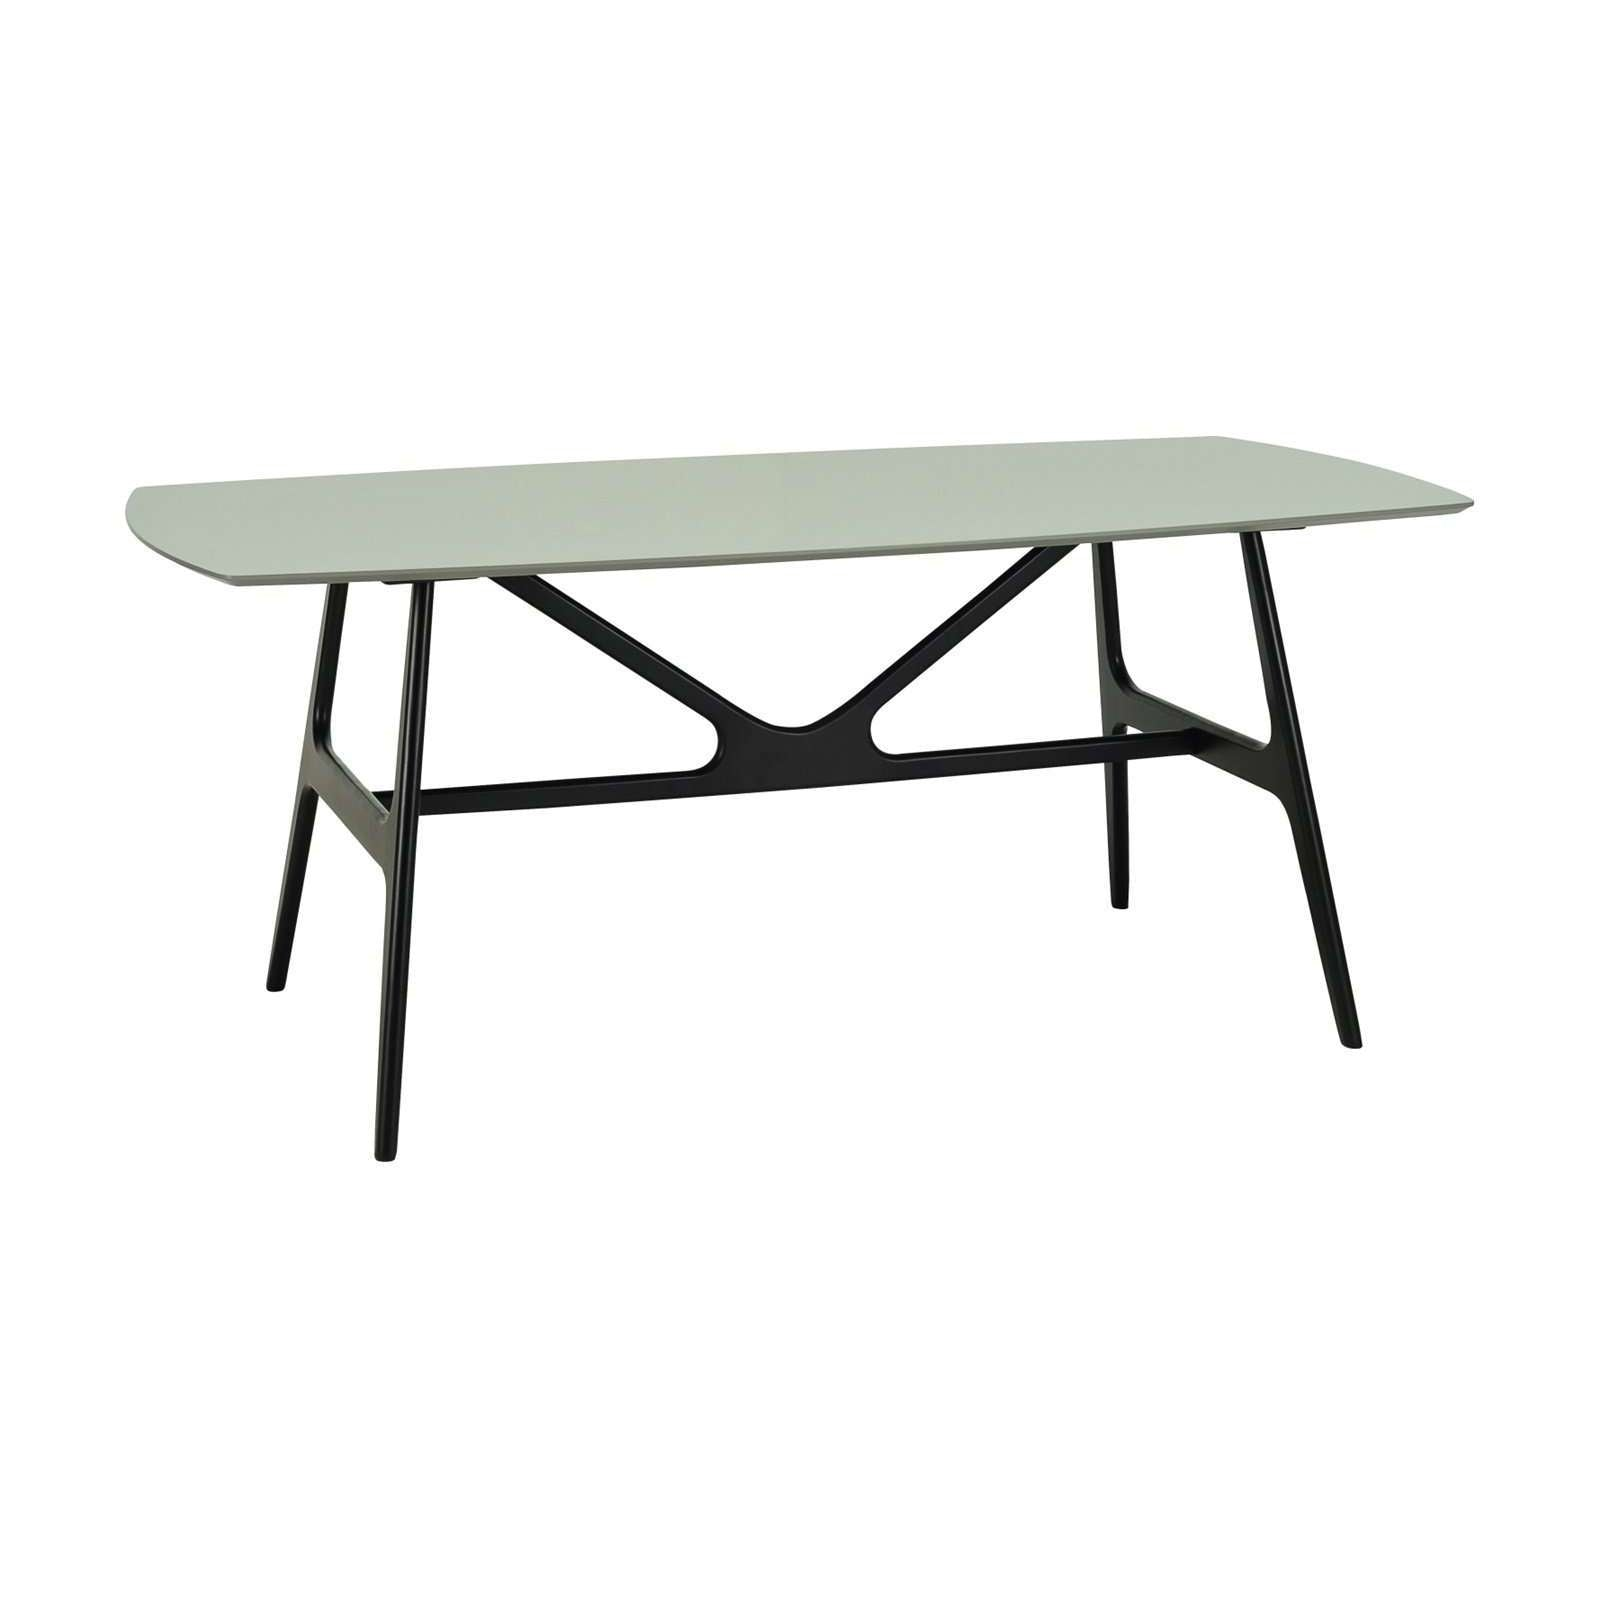 FILA 1.8m Dining Table In Black Colour Leg, Grey Lacquered Top